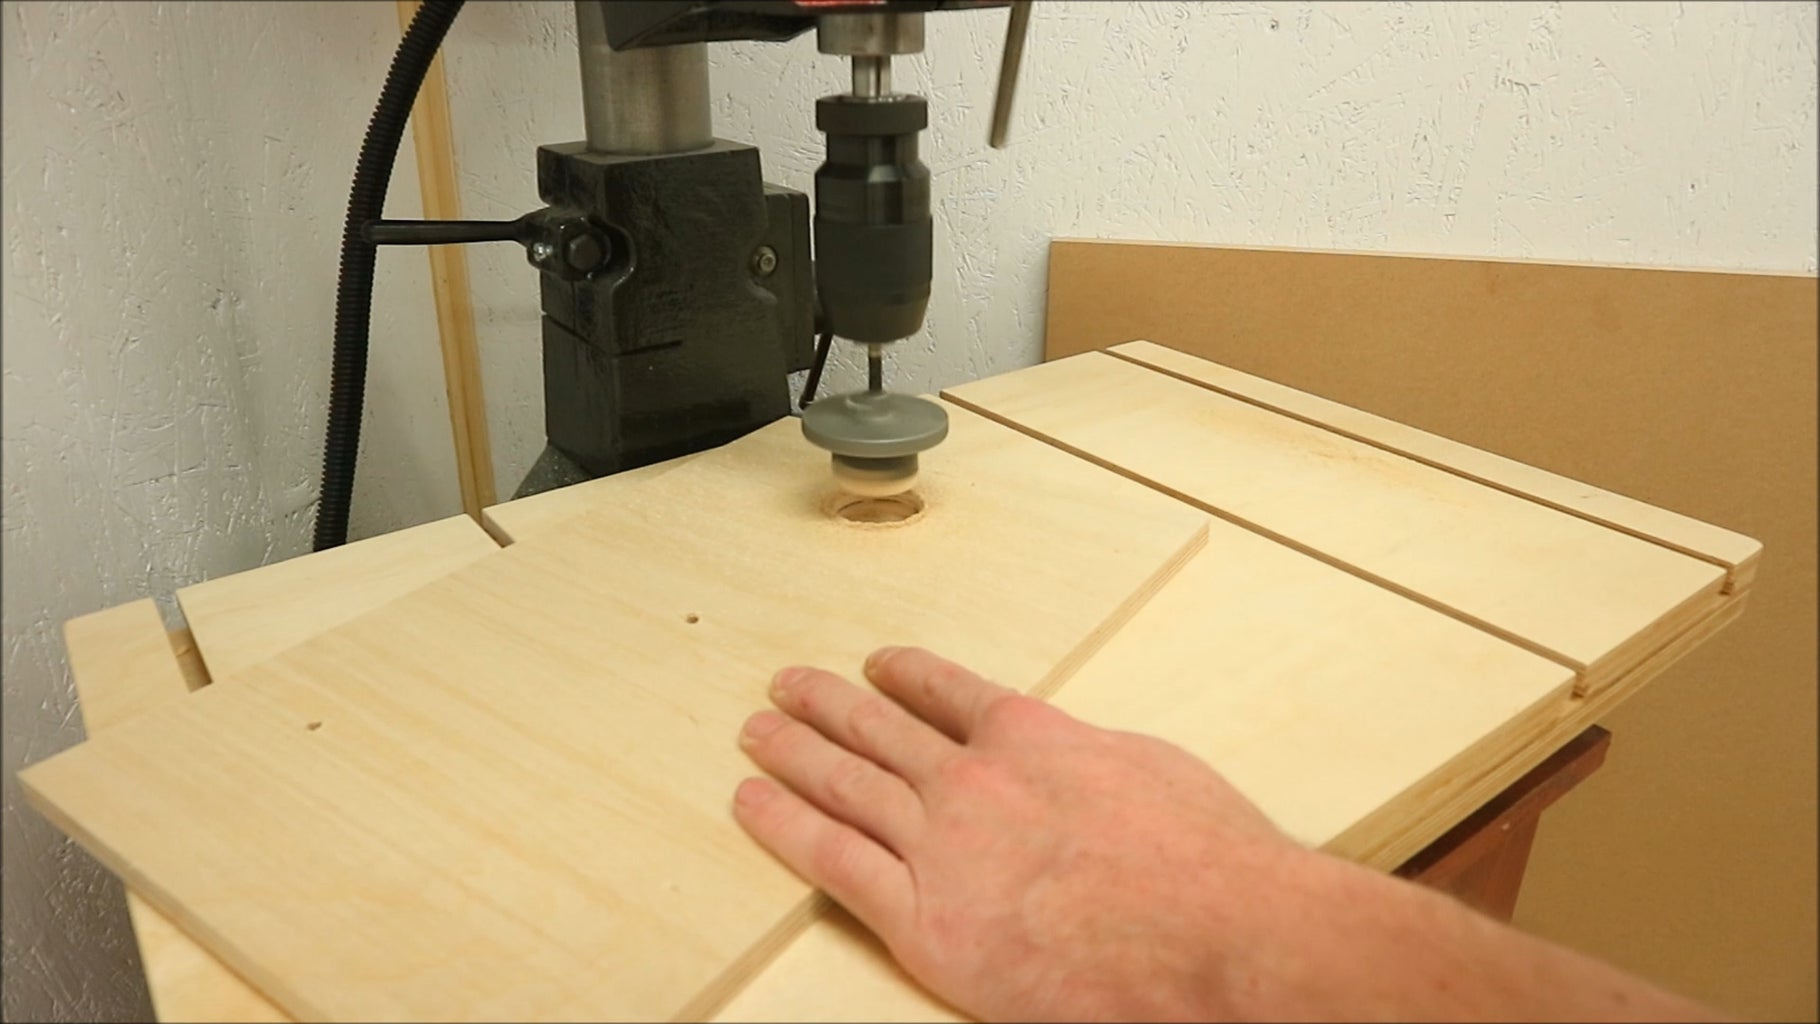 Making the Shelf to Hold the Tools